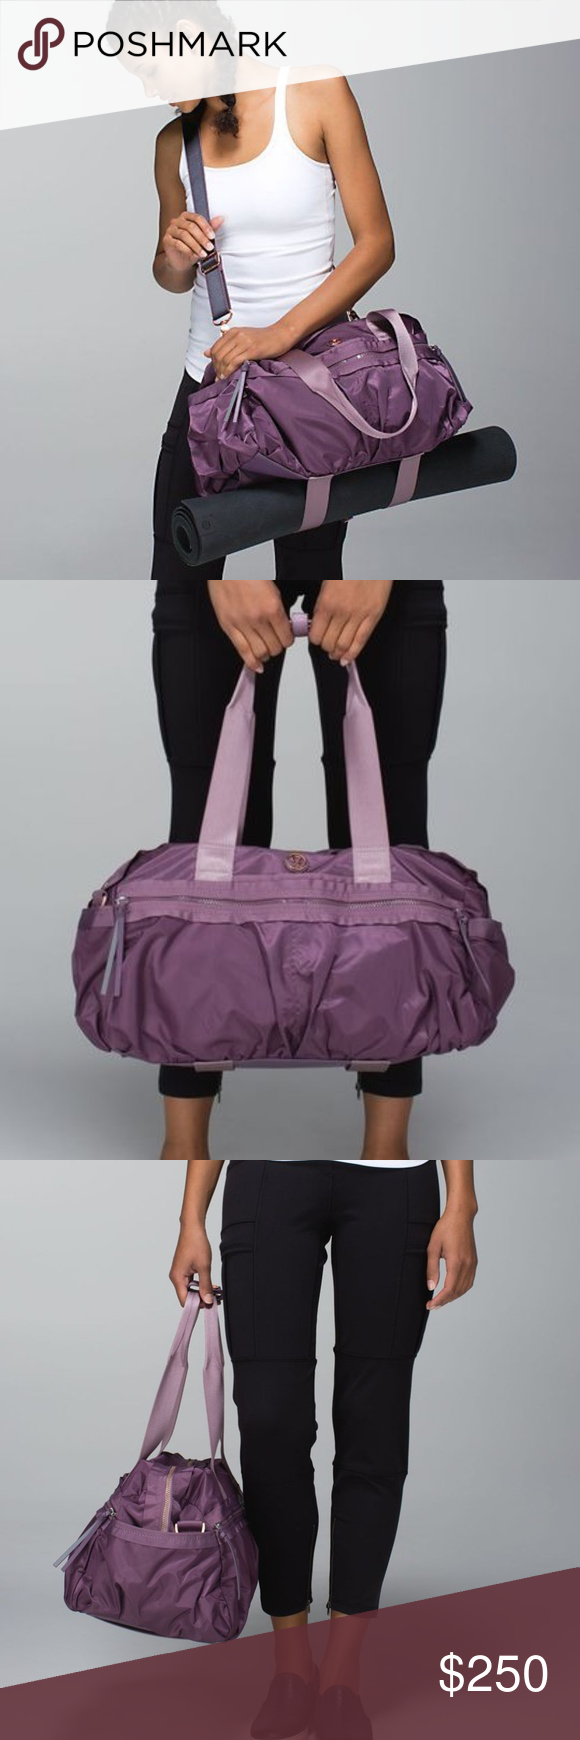 Lululemon Gym To Win Yoga Duffle Bag This Lightweight Medium Sized Duffel Is Perfect For The Travel Or Anyone Who On Go